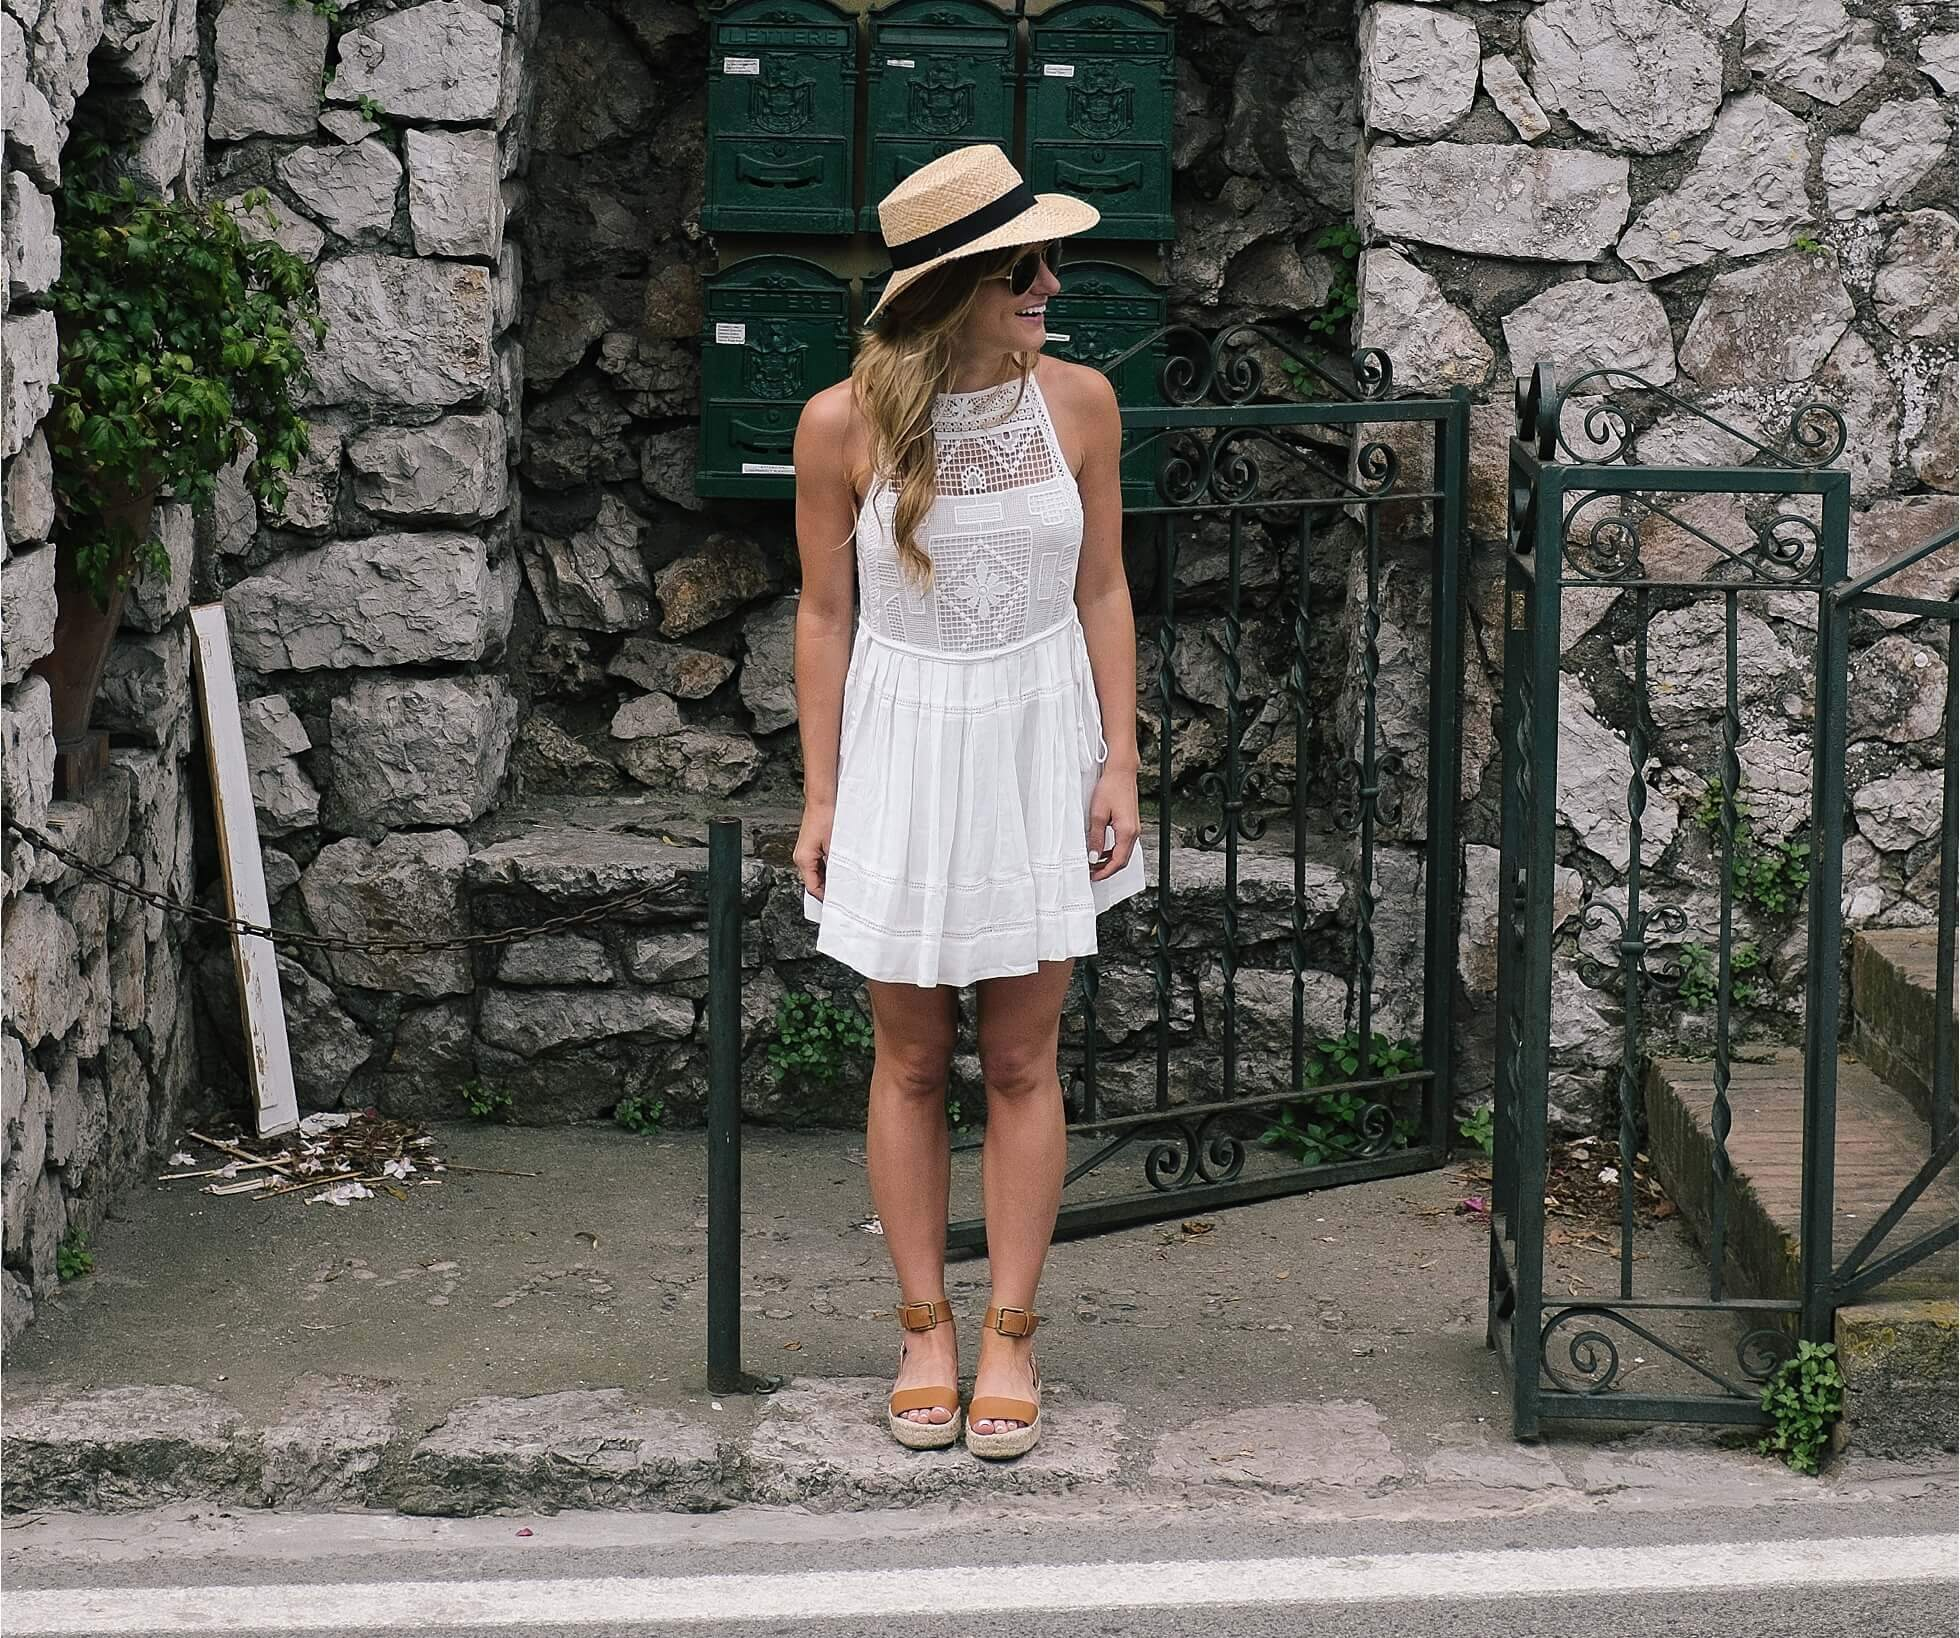 what to wear in italy in june simple little sundress and flats with a sunhat